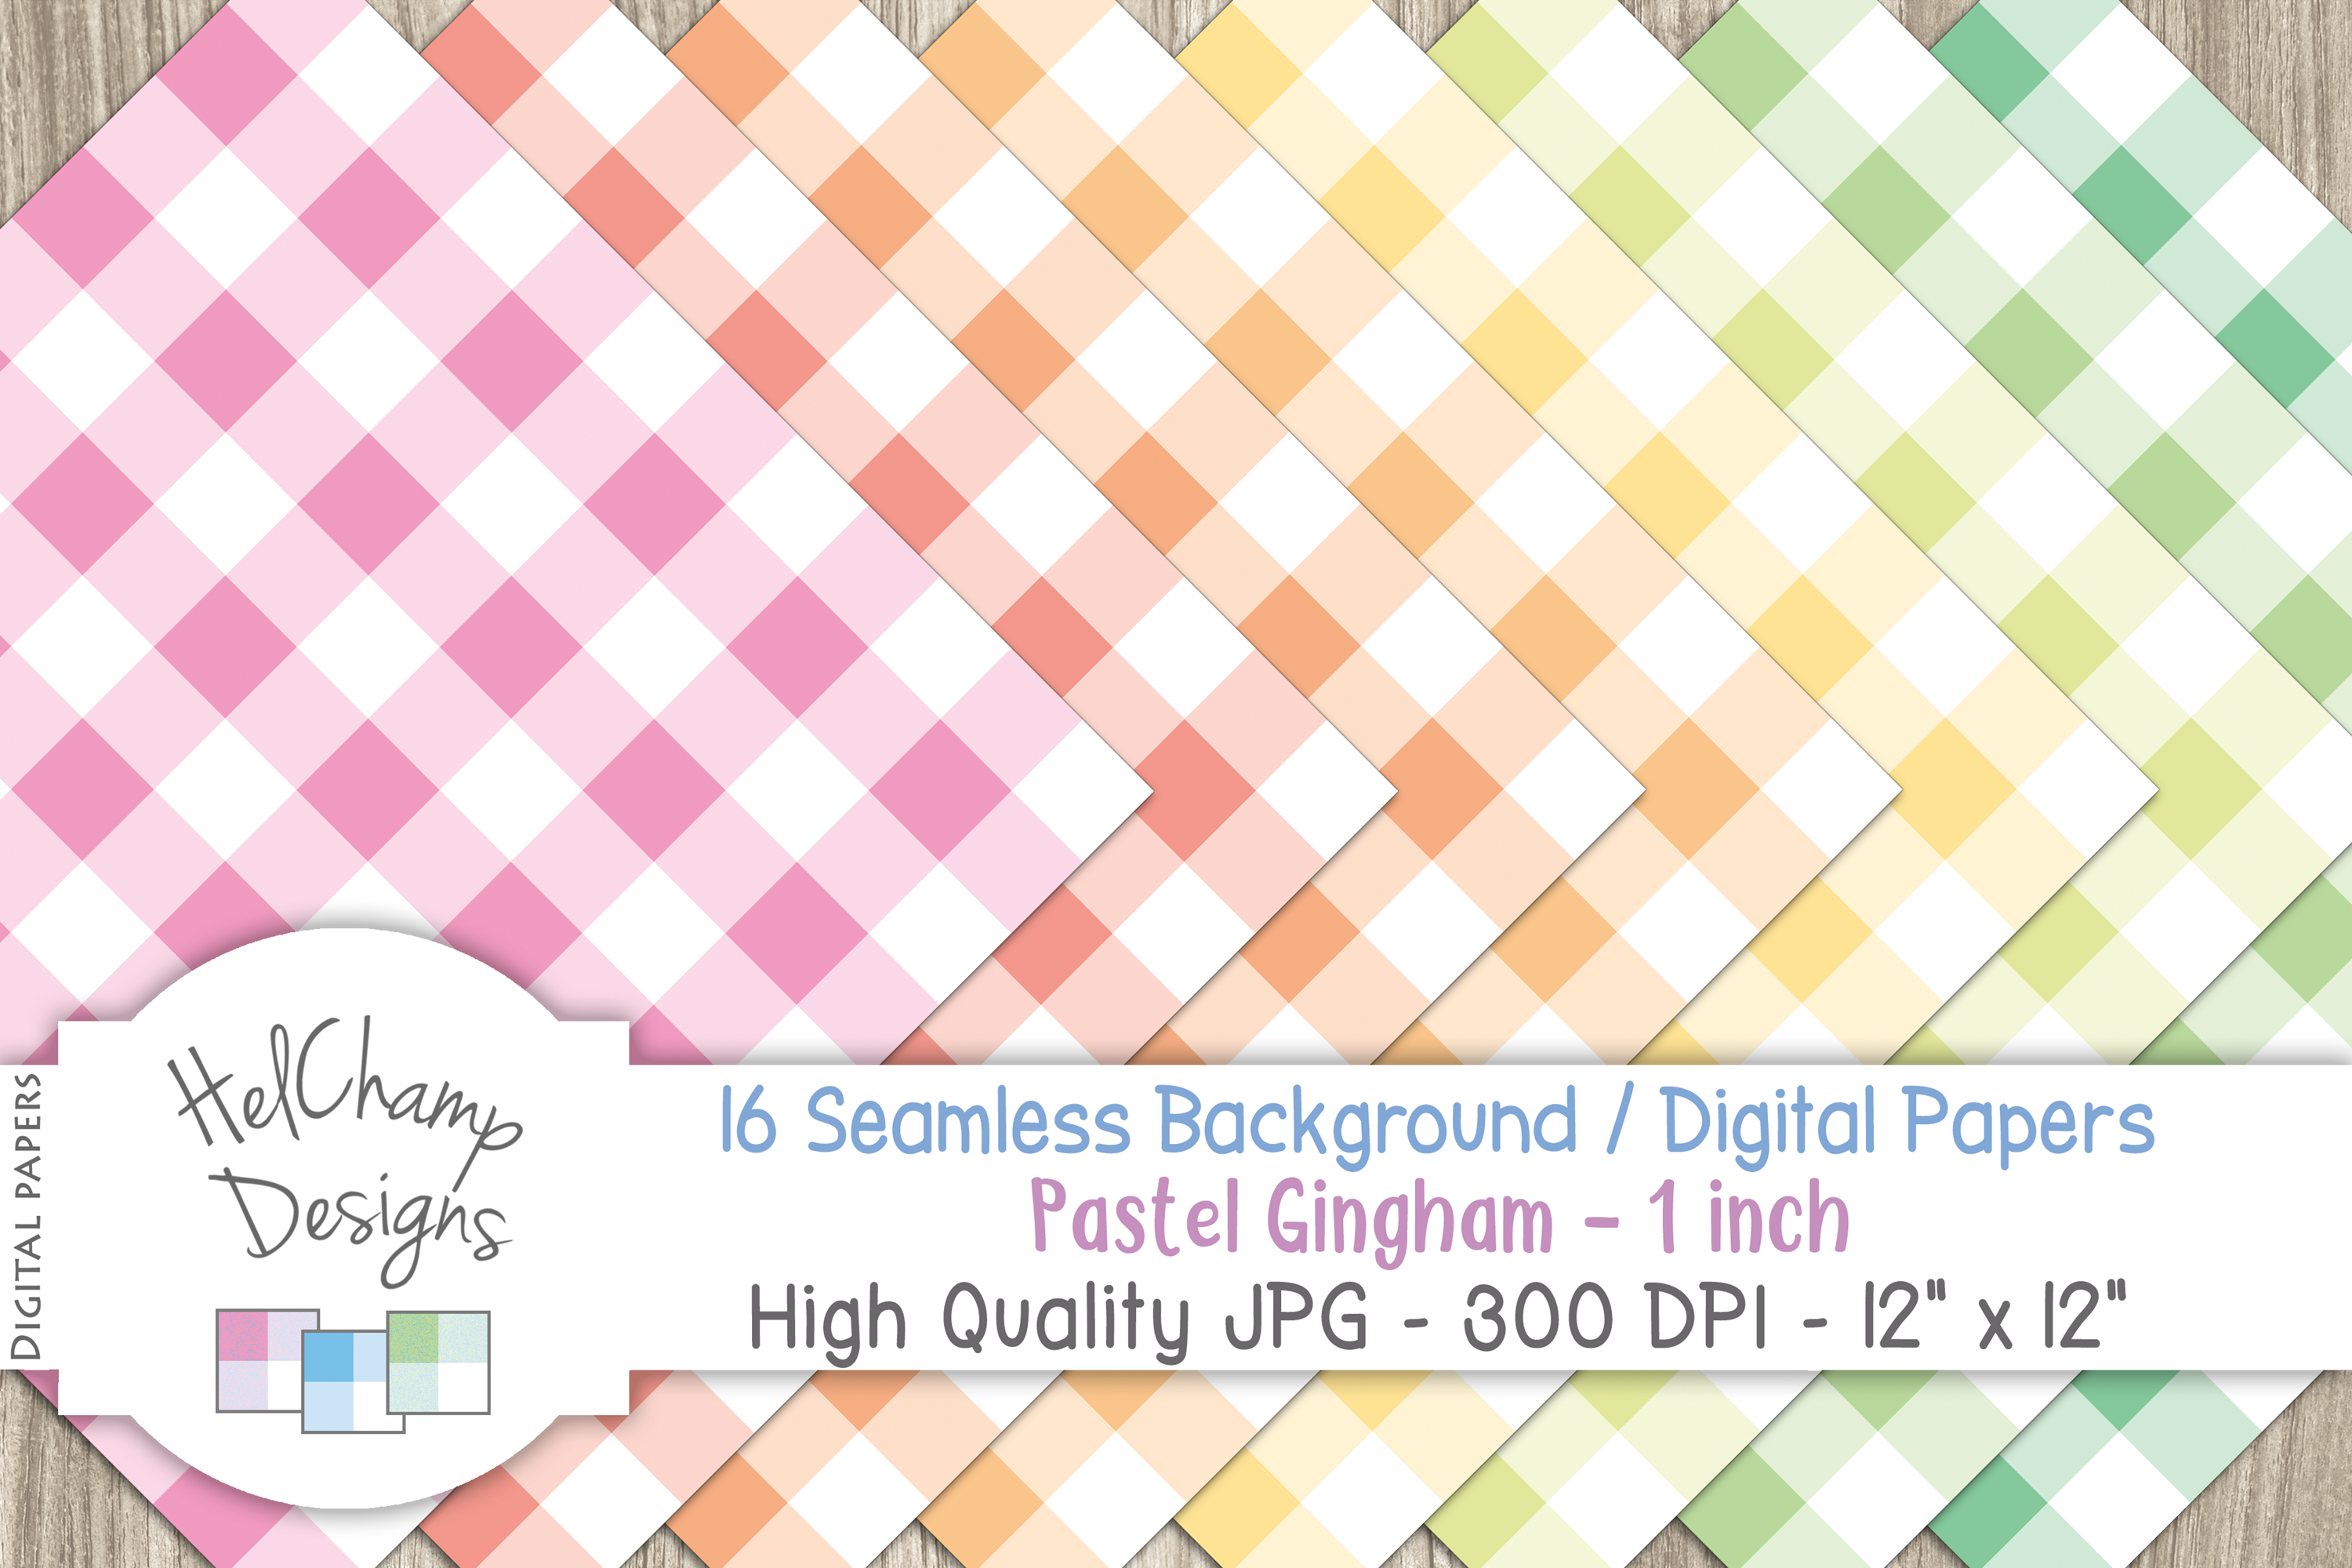 16 seamless Digital Papers - Pastel Gingham 1 inch - HC003 example image 3